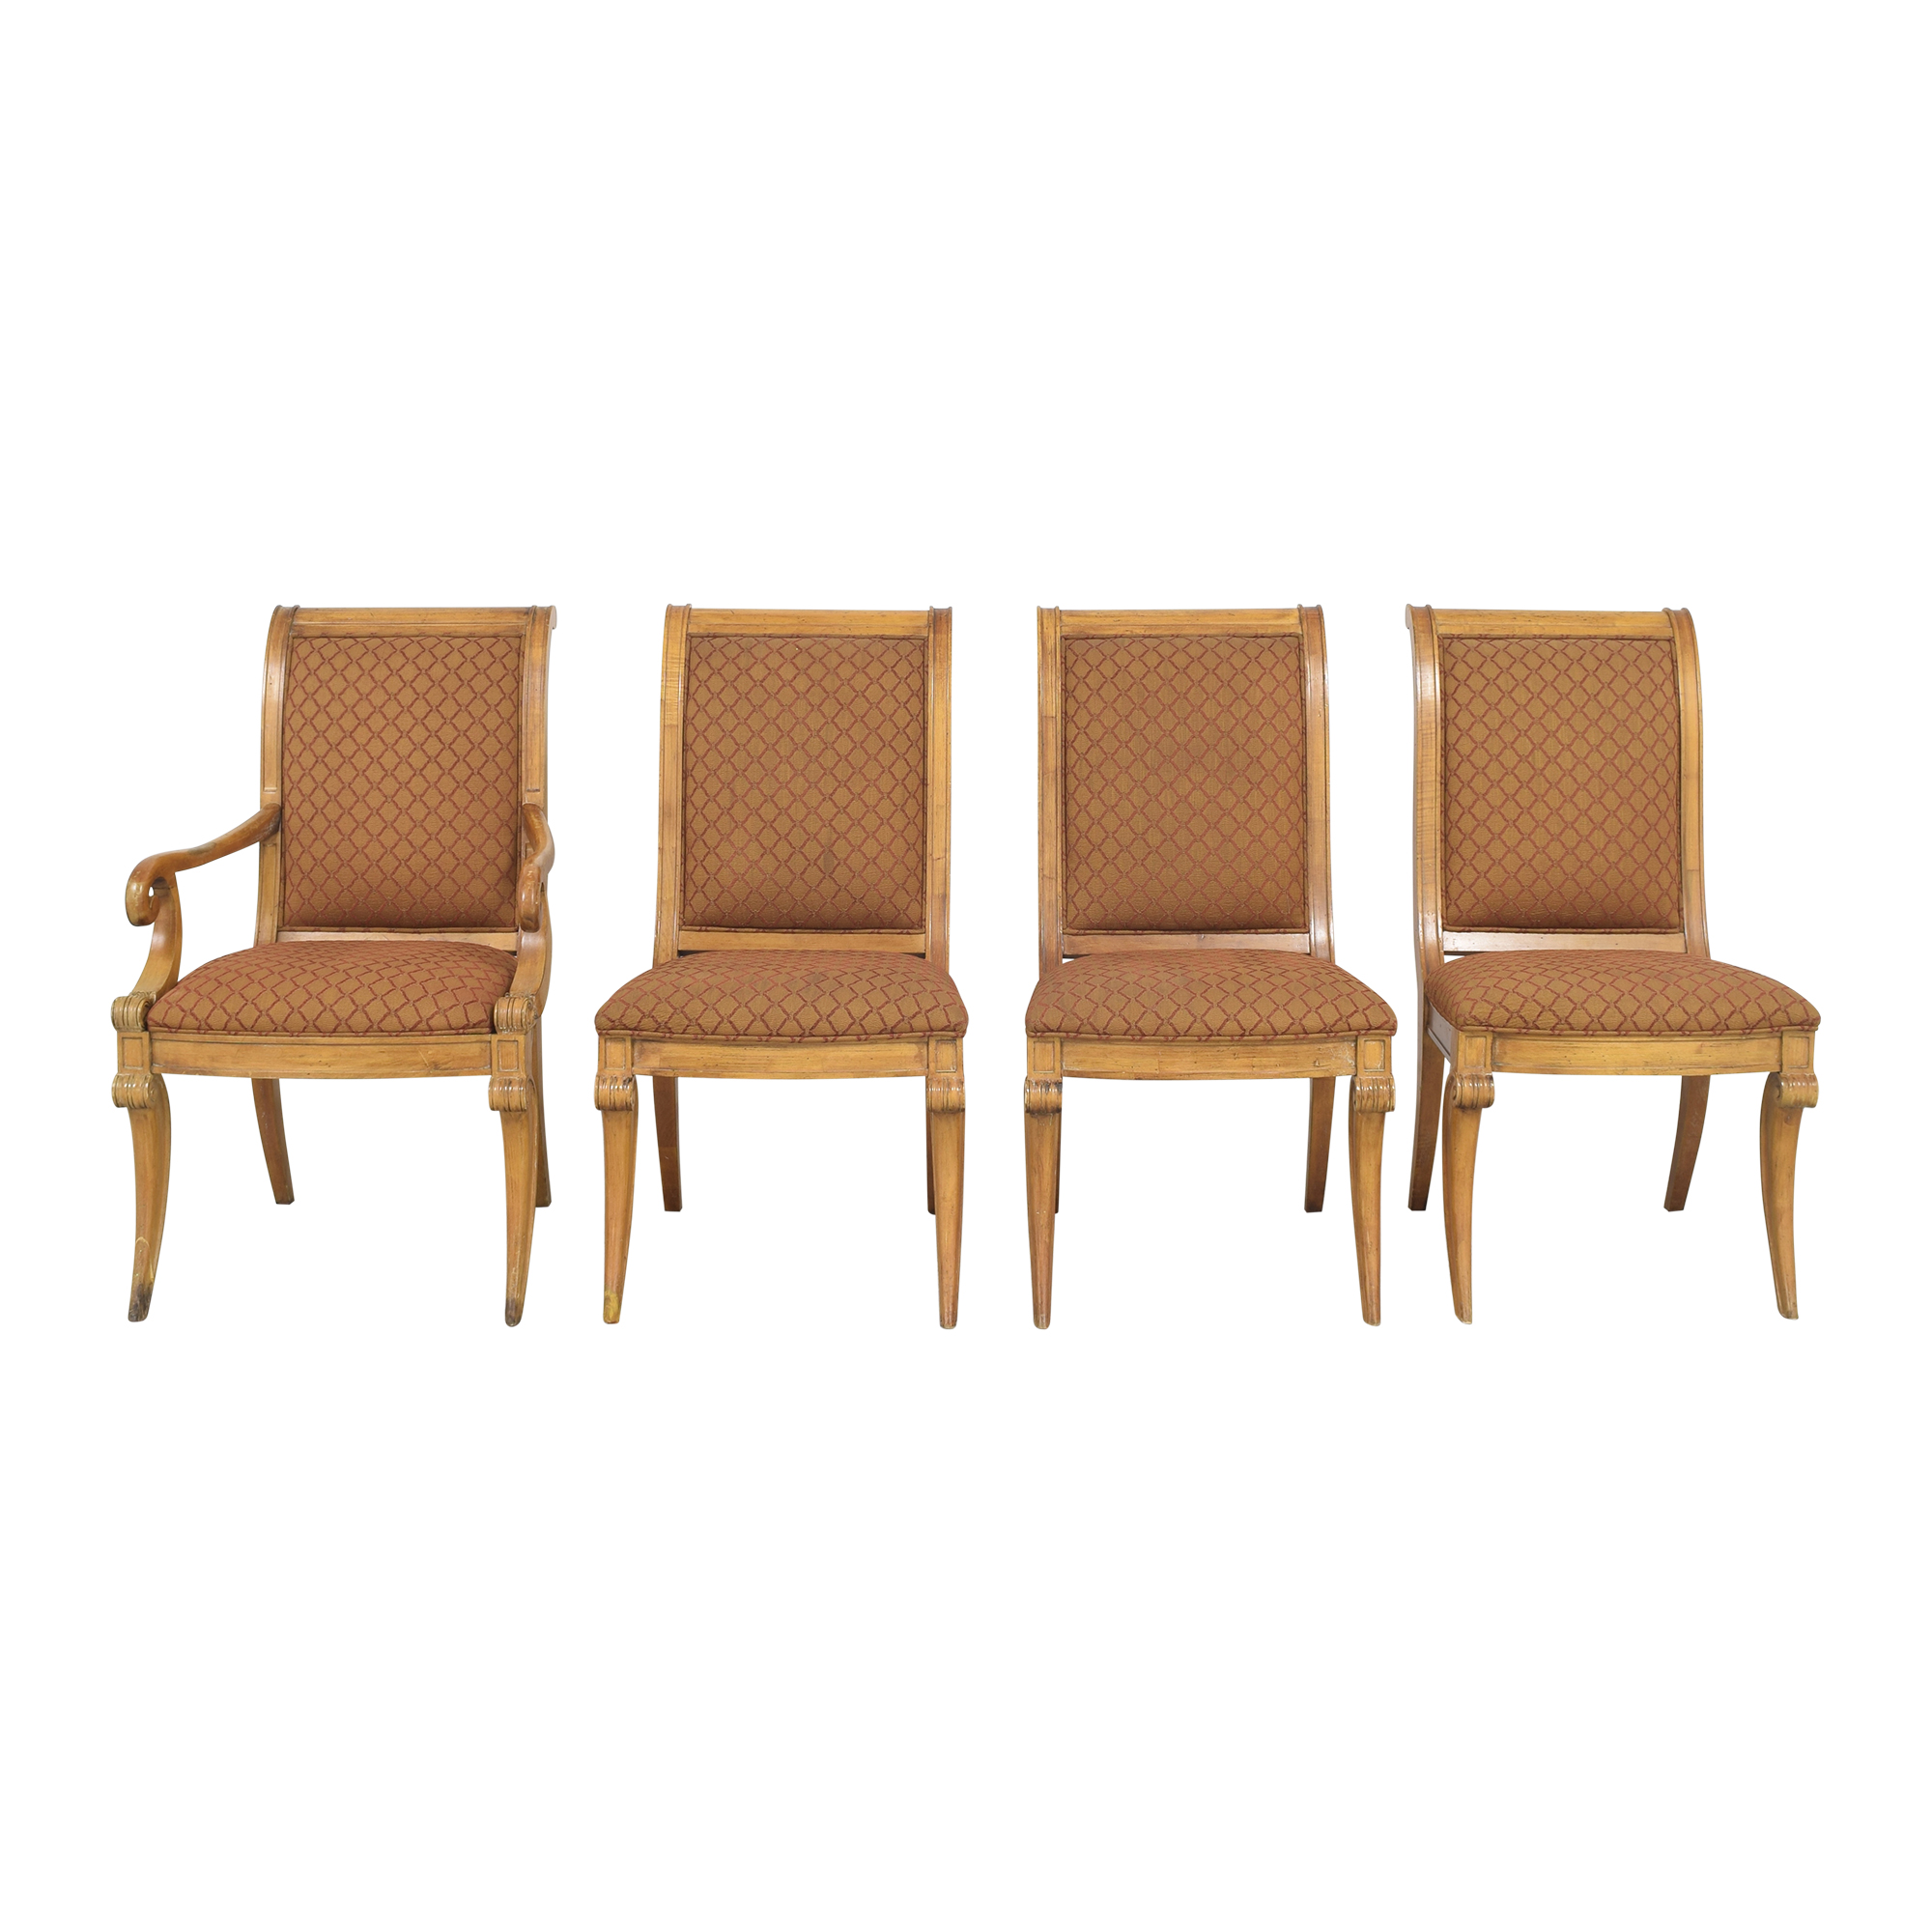 buy Century Furniture Upholstered Dining Chairs Century Furniture Dining Chairs